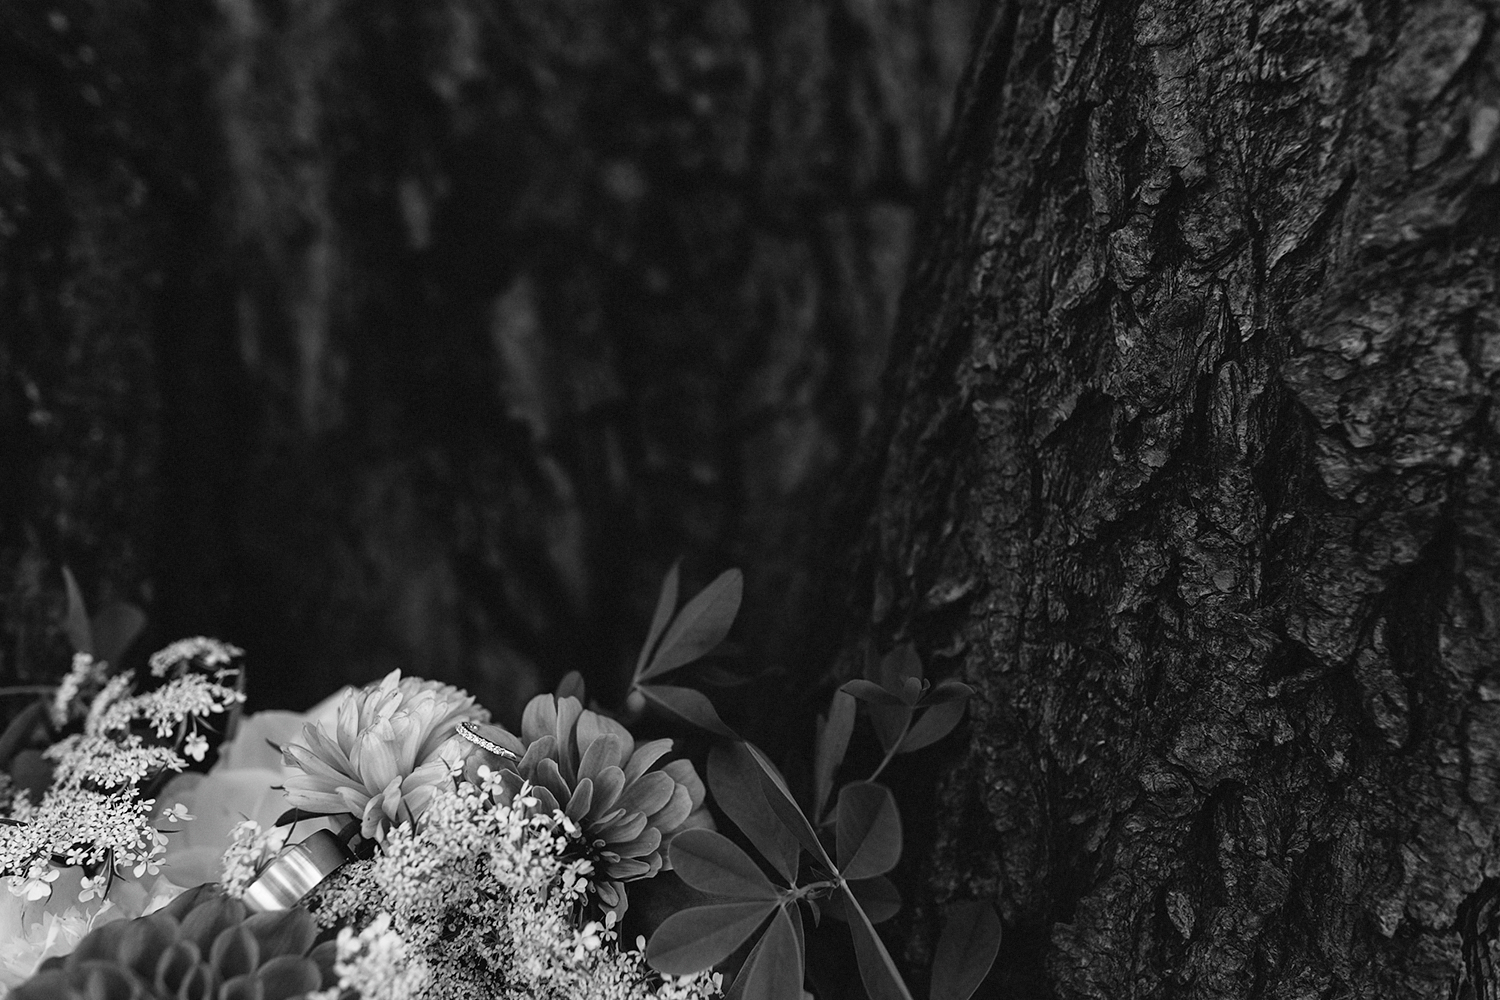 Best-Toronto-Wedding-Photographers-Photojournalistic-Wedding-Photography-in-Toronto-Ryanne-Hollies-Photography-candid-documentary-bradford-family-farm-rustic-venue-inspiration-details-flowers-with-wedding-bands-in-tree.jpg